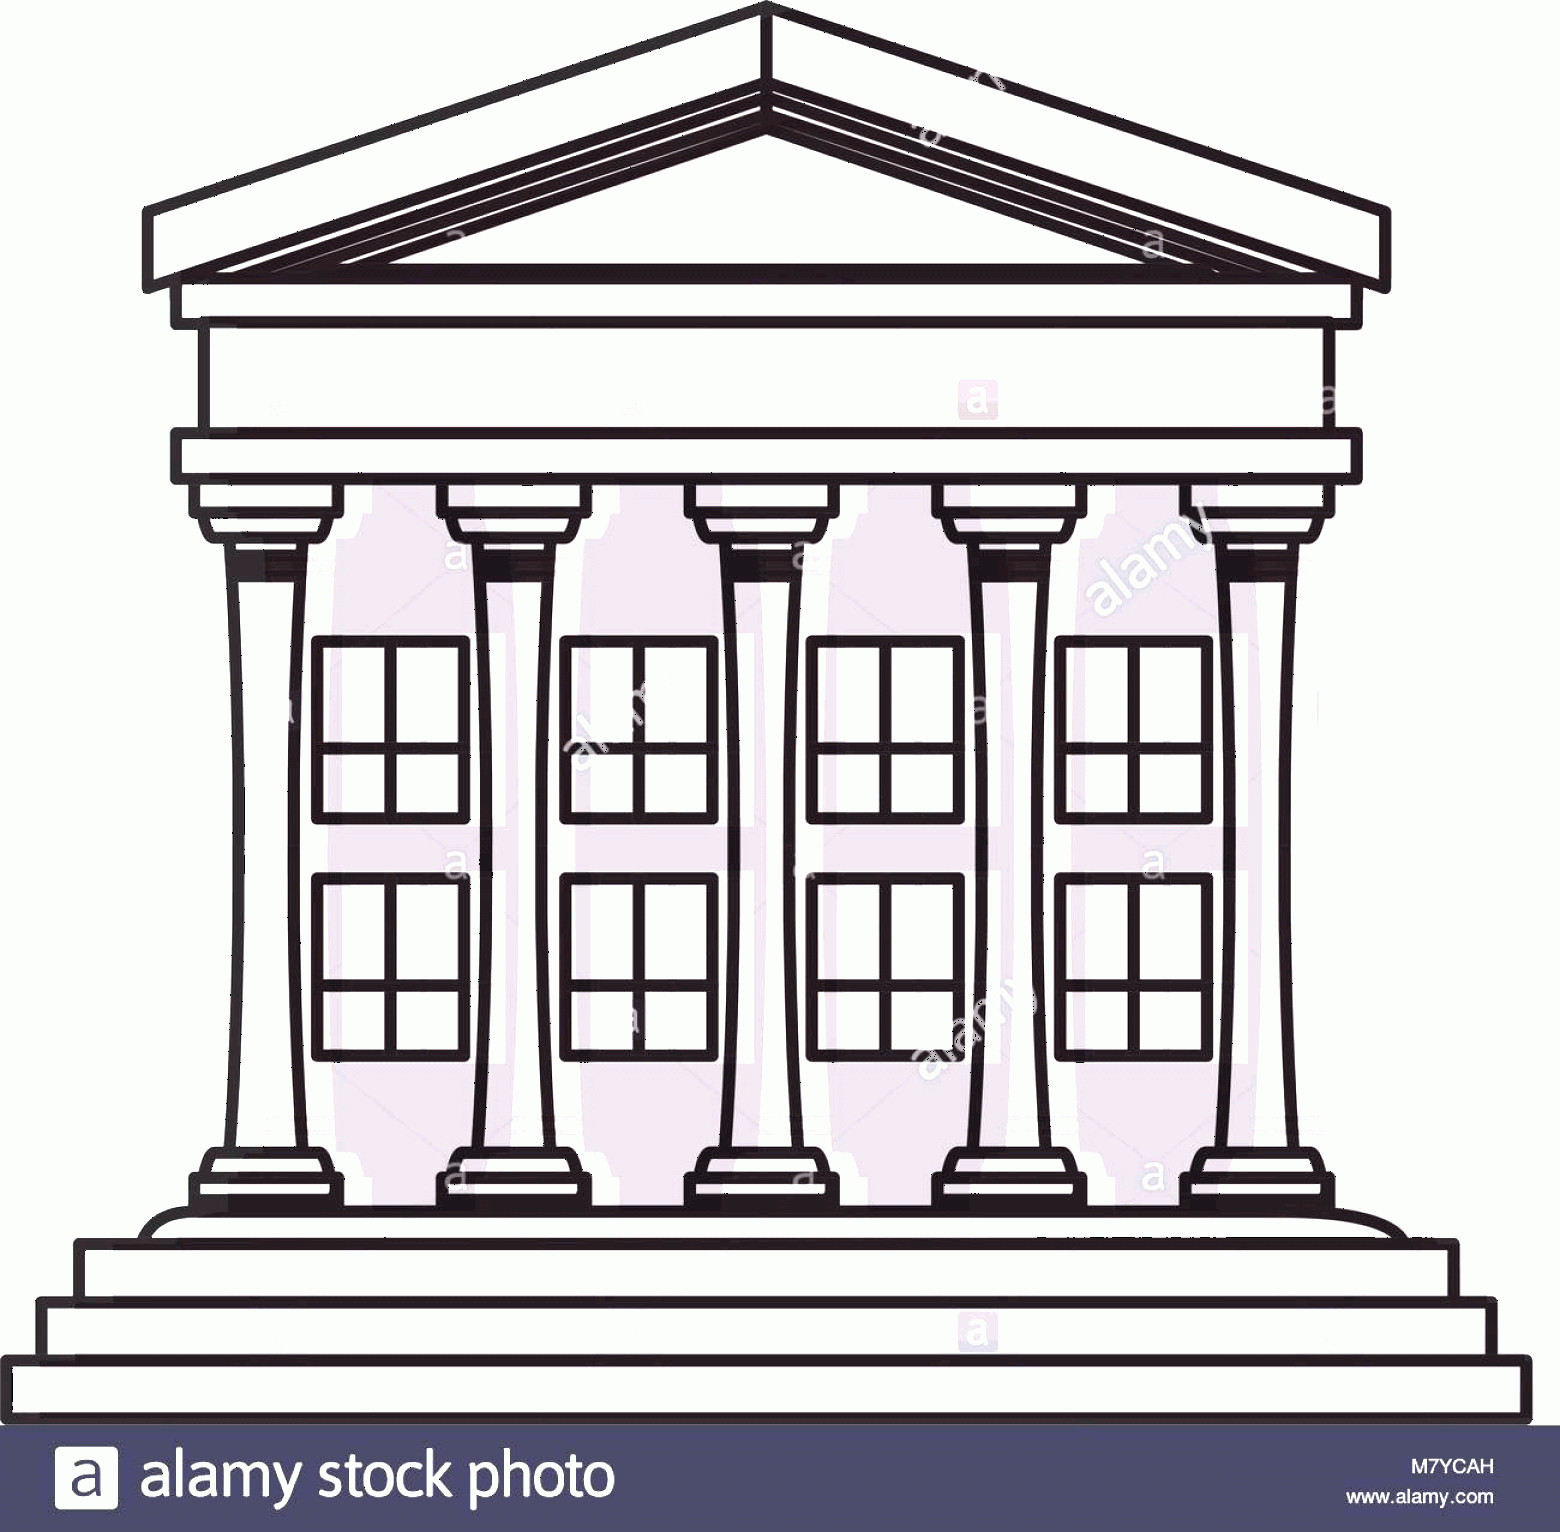 Court Building Vector: Stock Photo Court Building Icon Over White Background Colorful Design Vector Illustration